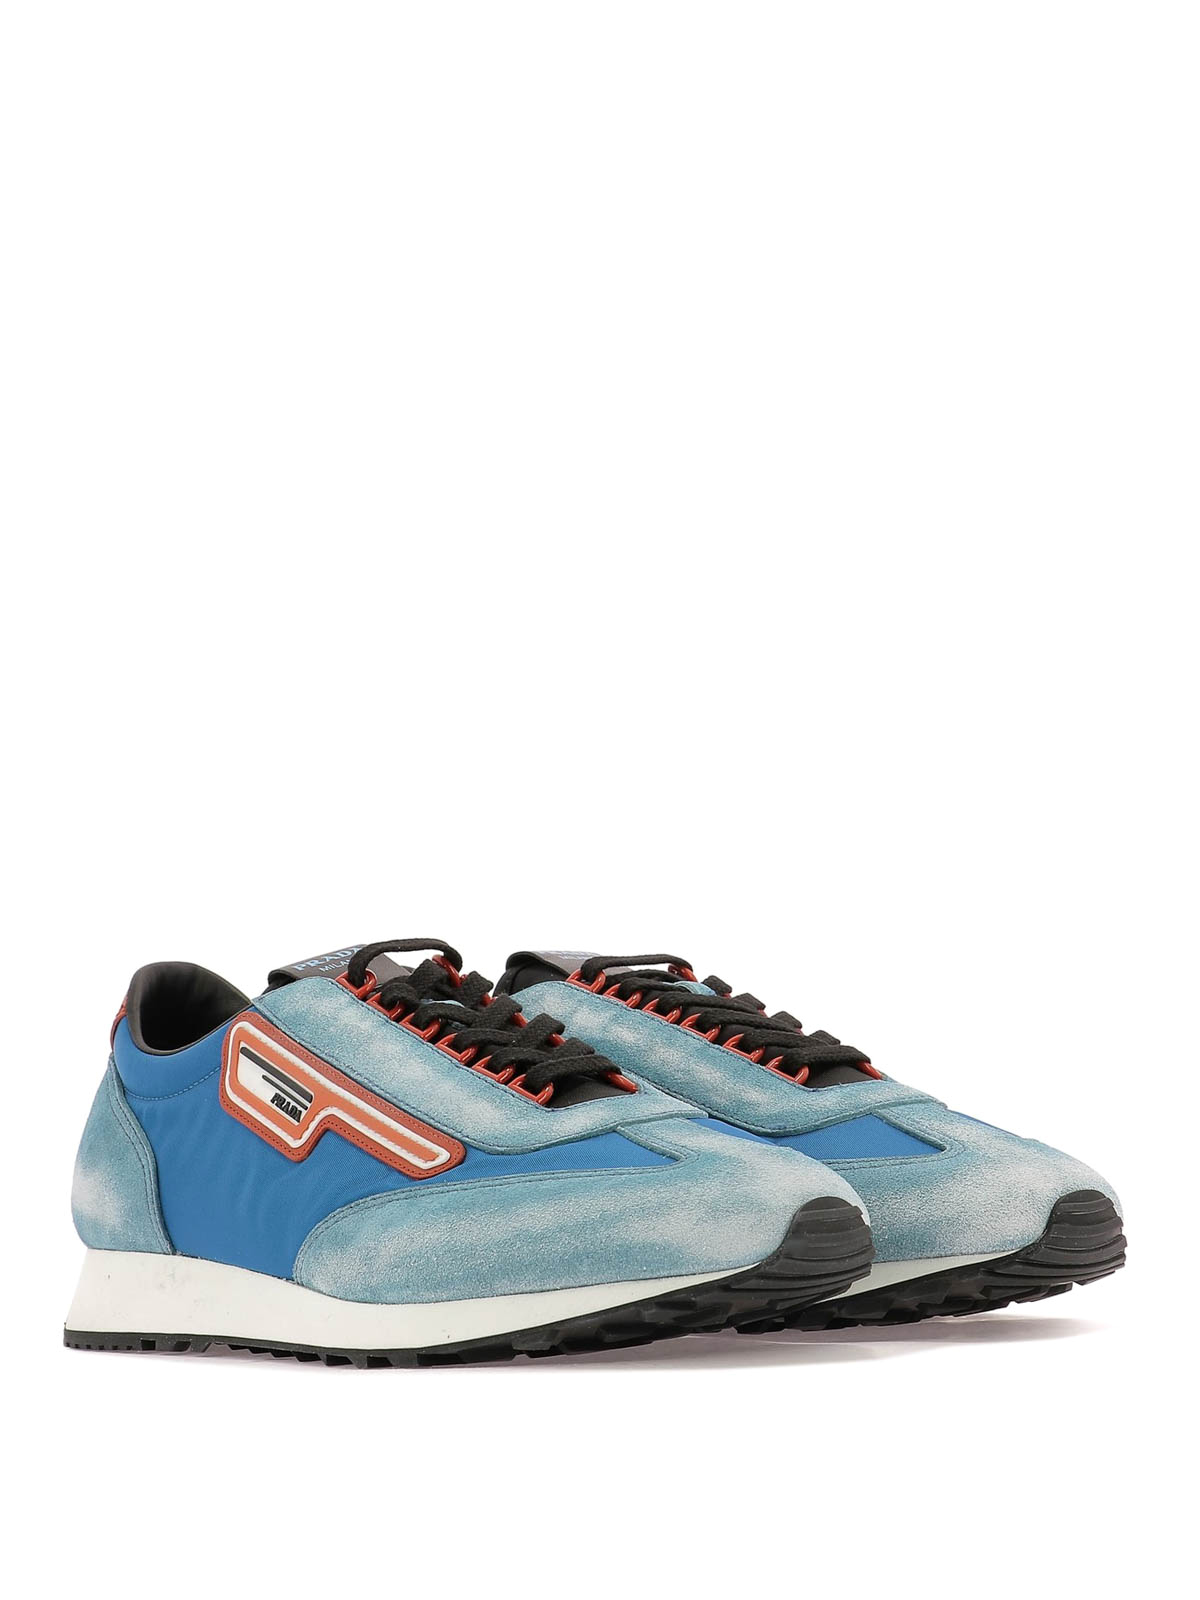 624bc50d1e Prada - Sky blue fabric and used suede sneakers - trainers ...